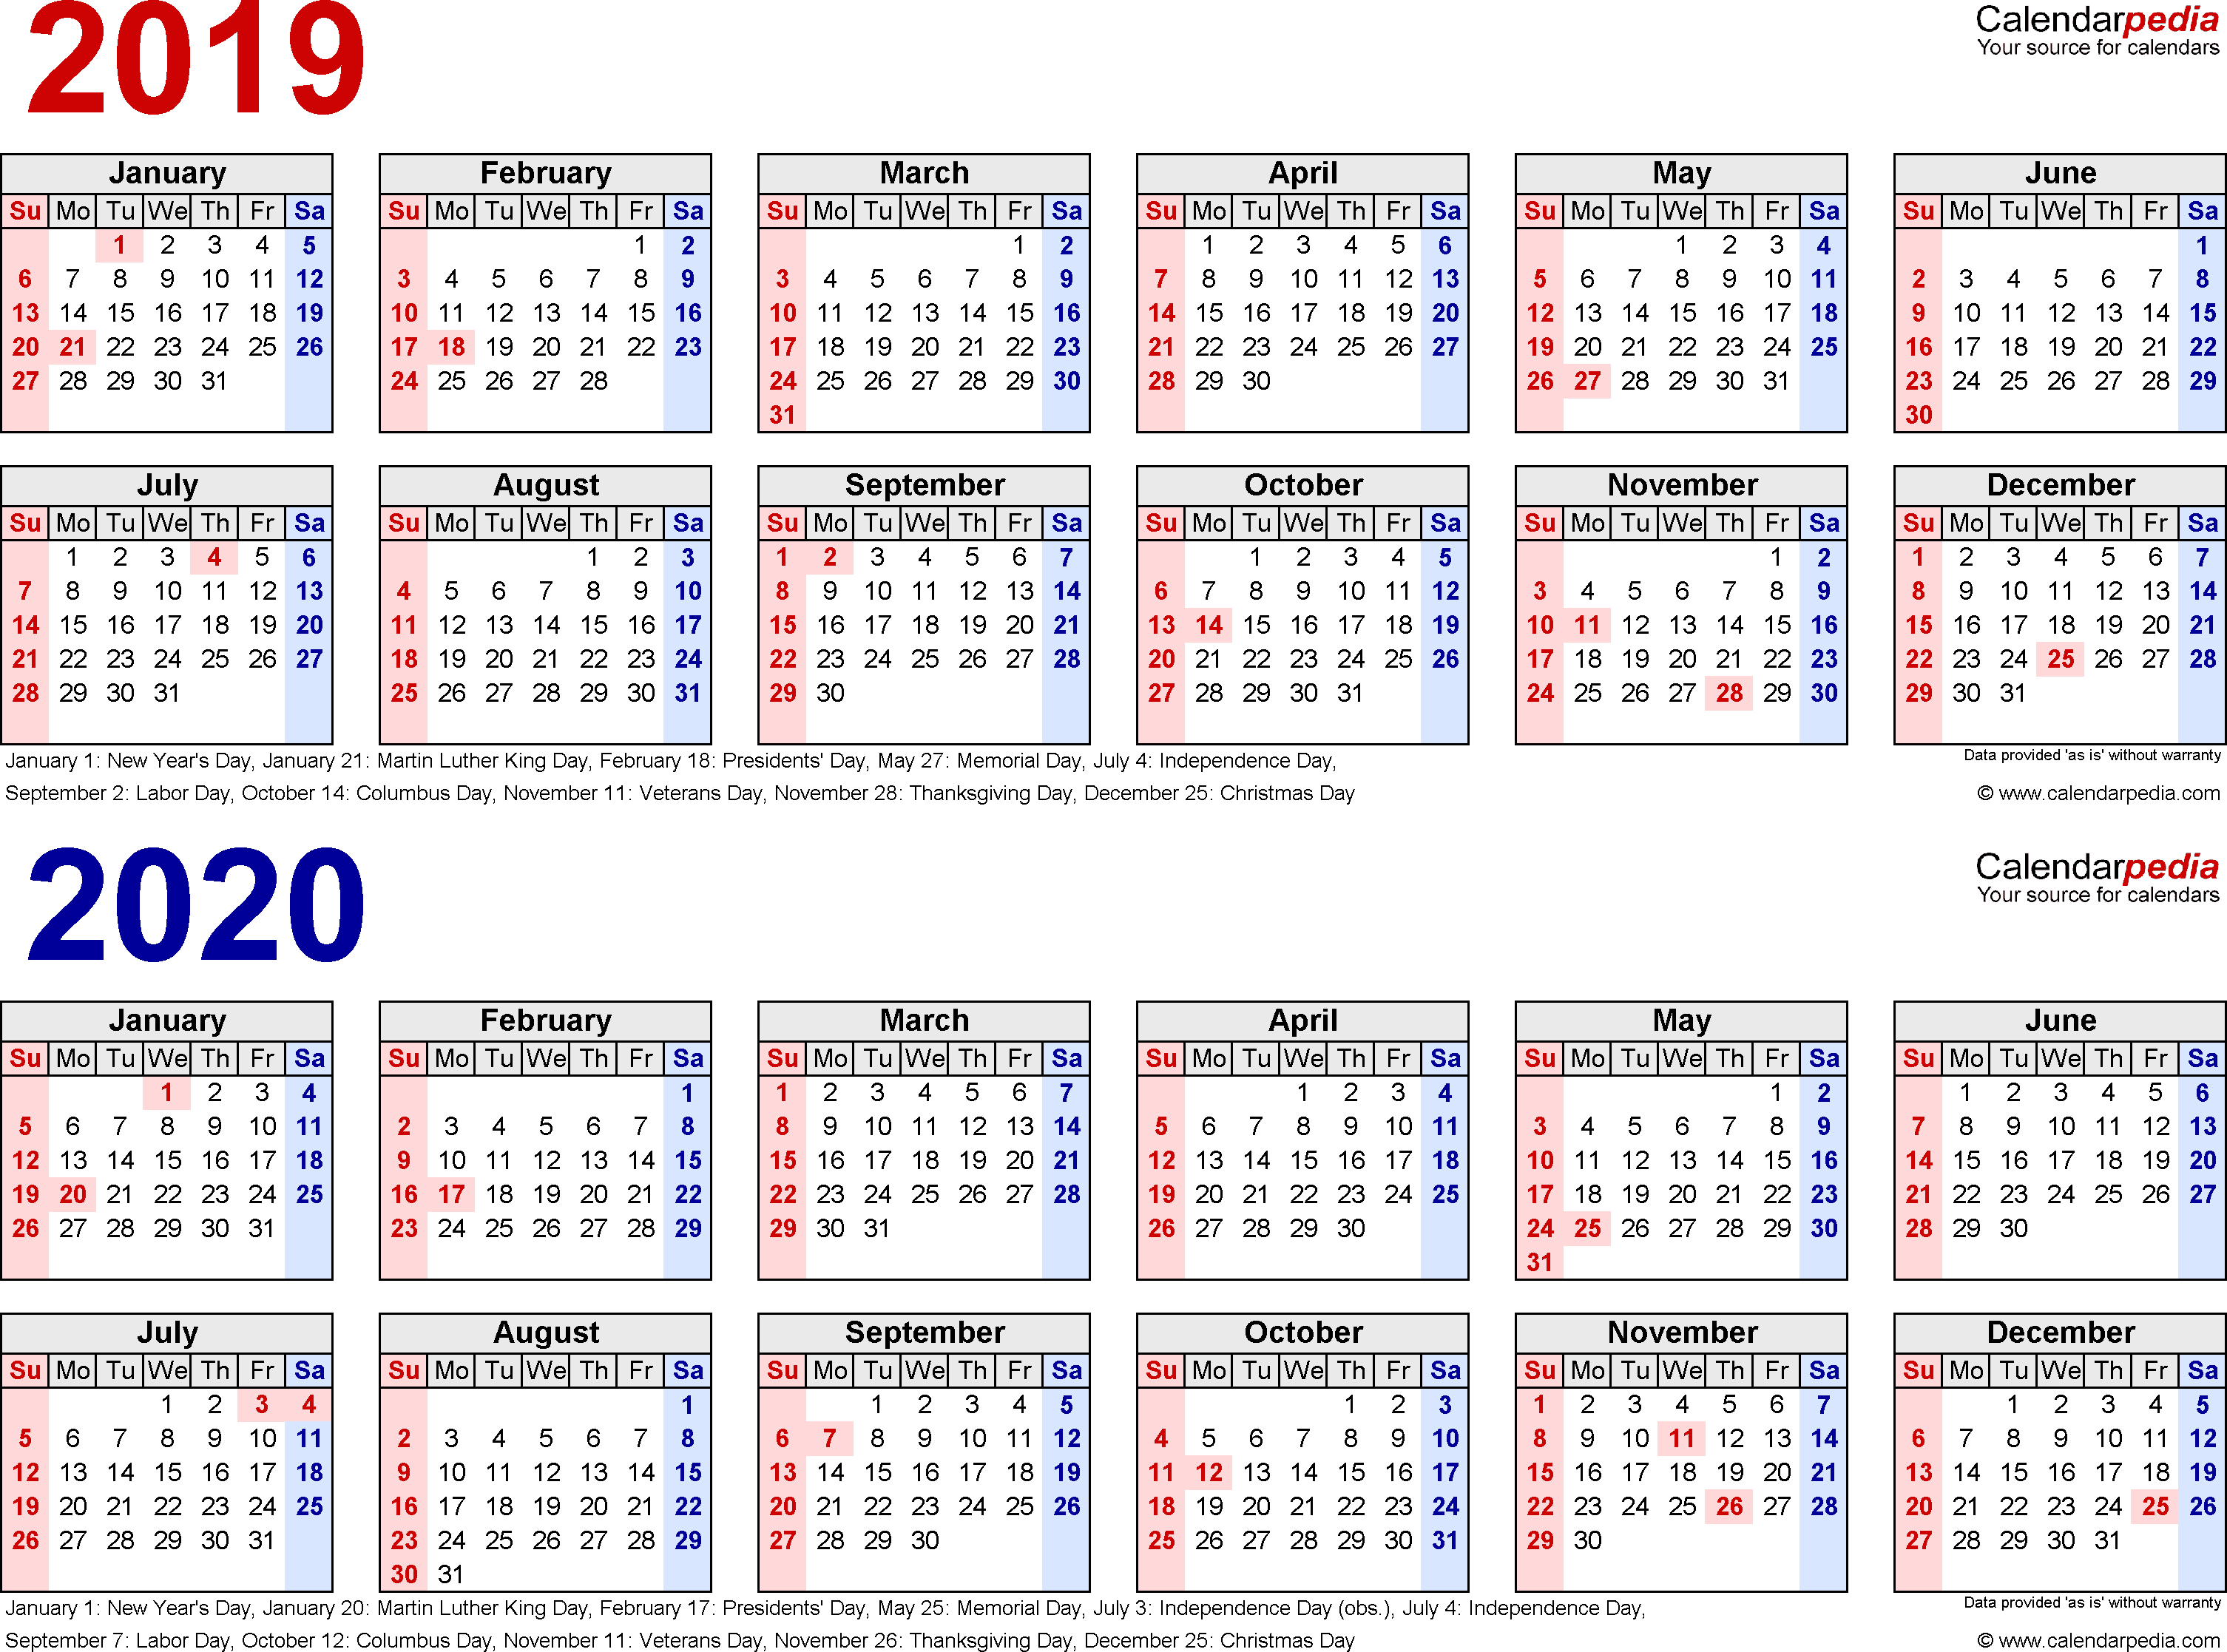 2019-2020 Calendar - Free Printable Two-Year Pdf Calendars pertaining to Calendar 2020 Year At A Glance Free Printable